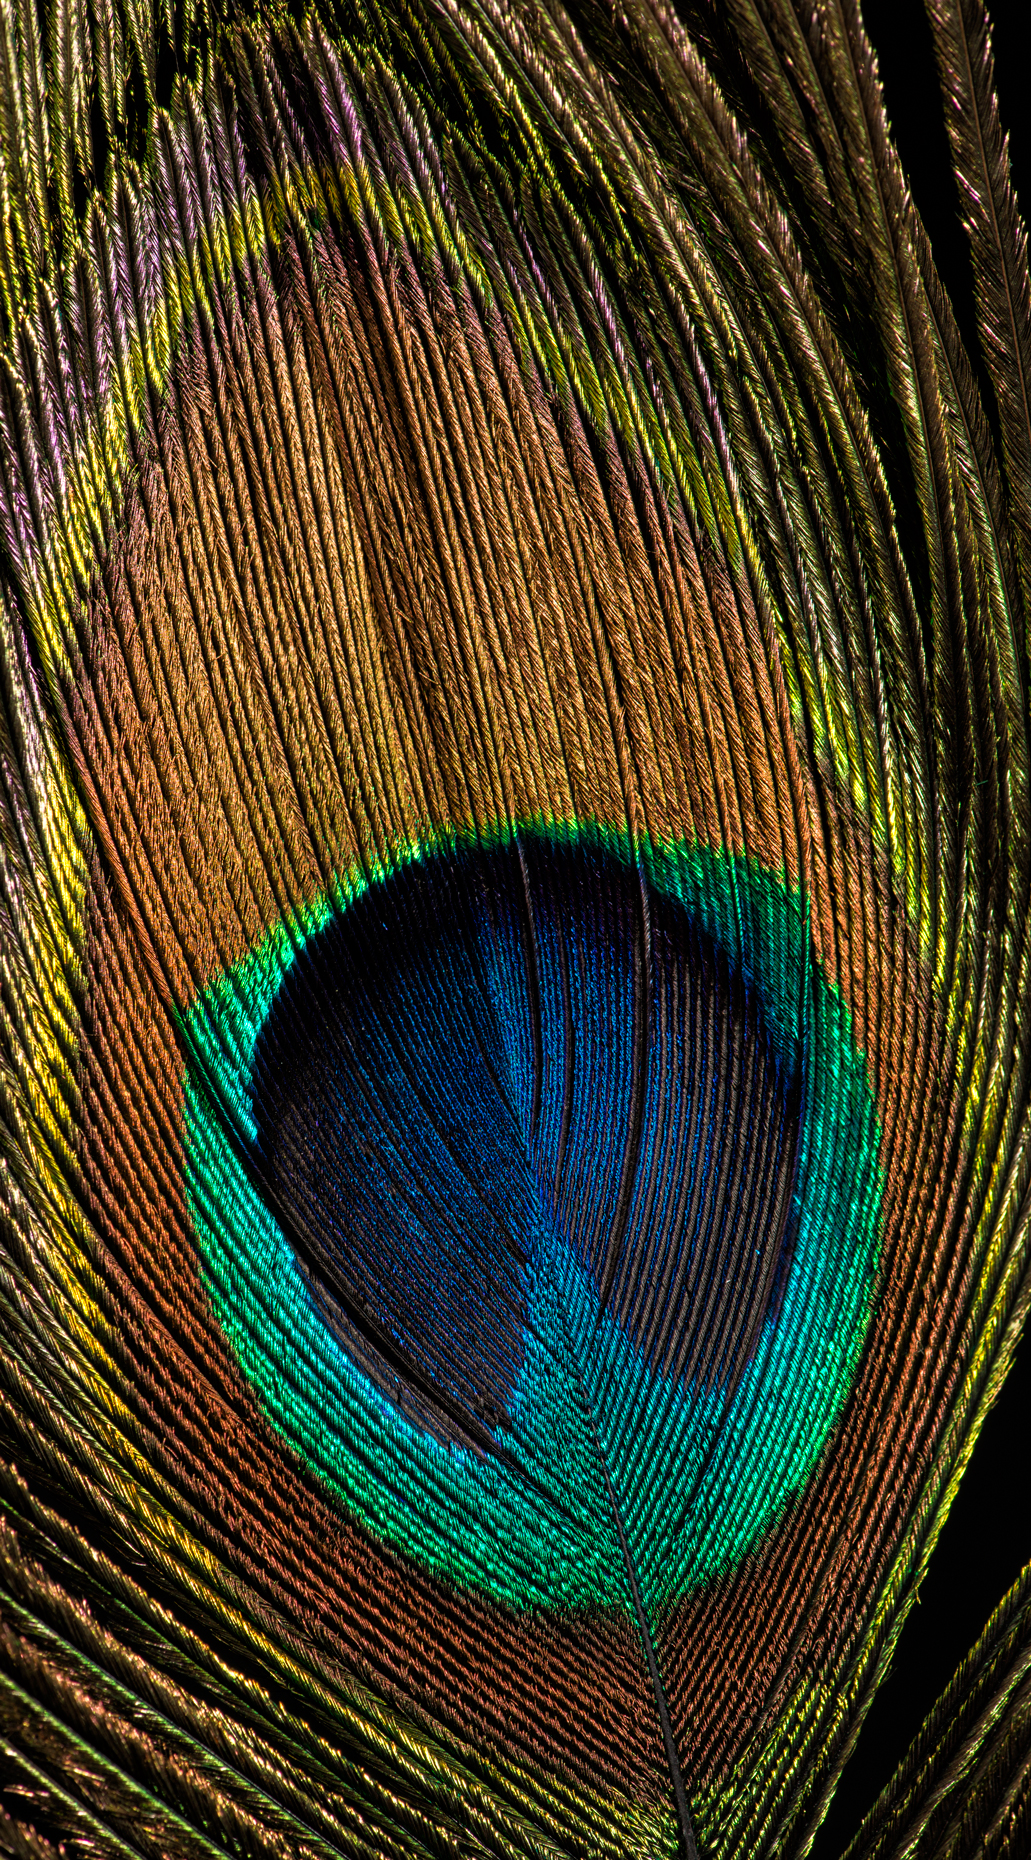 Peacock Feather crop v4